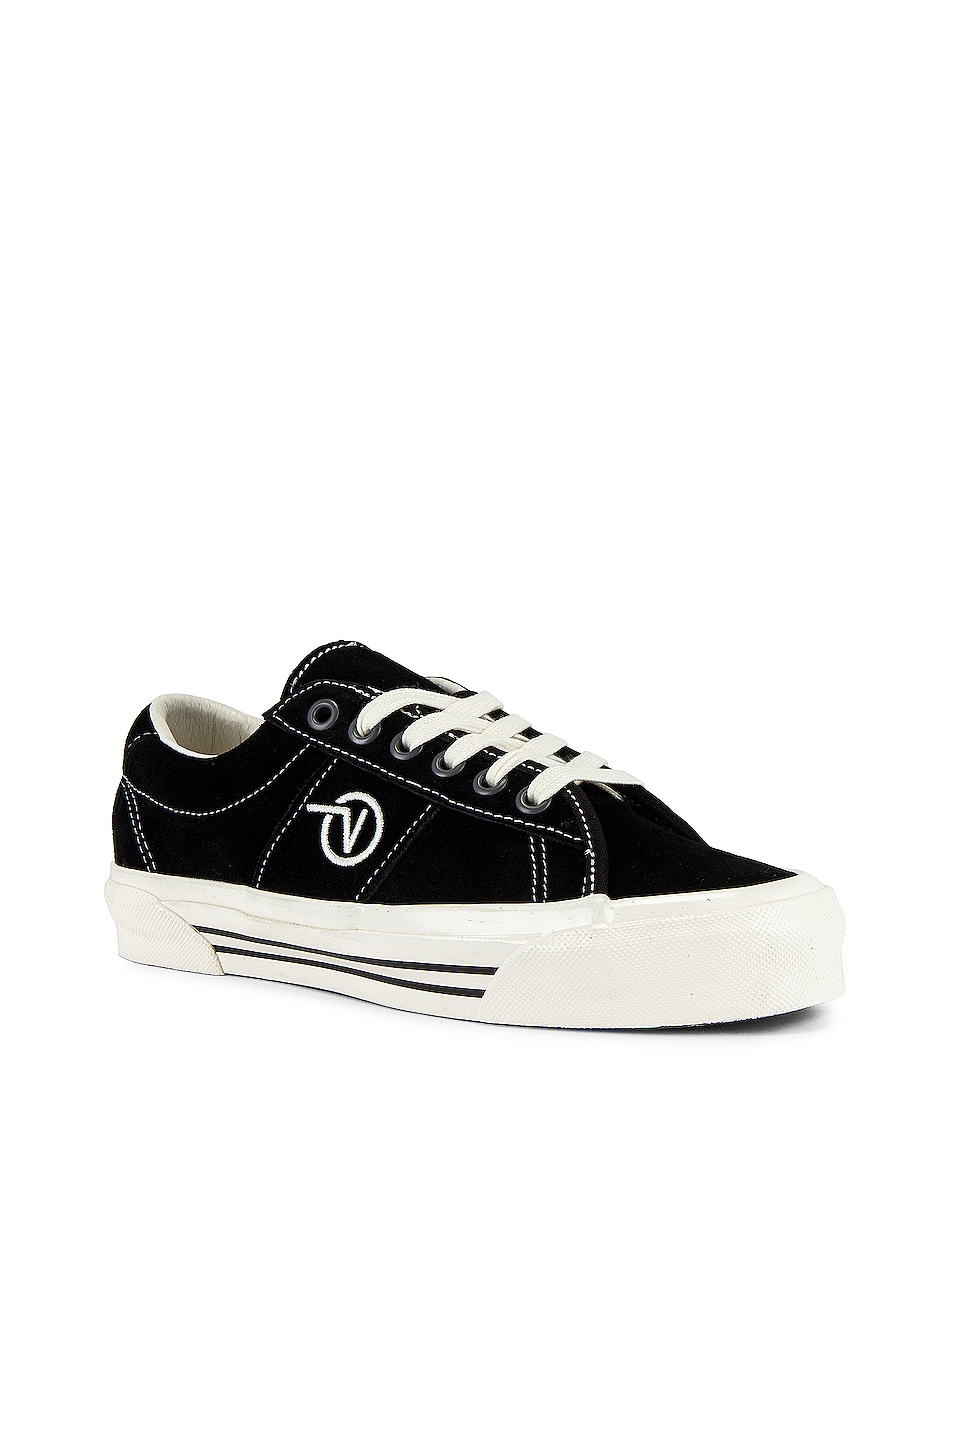 Image 1 of Vans Vault OG Sid LX in Black & Marshmallow